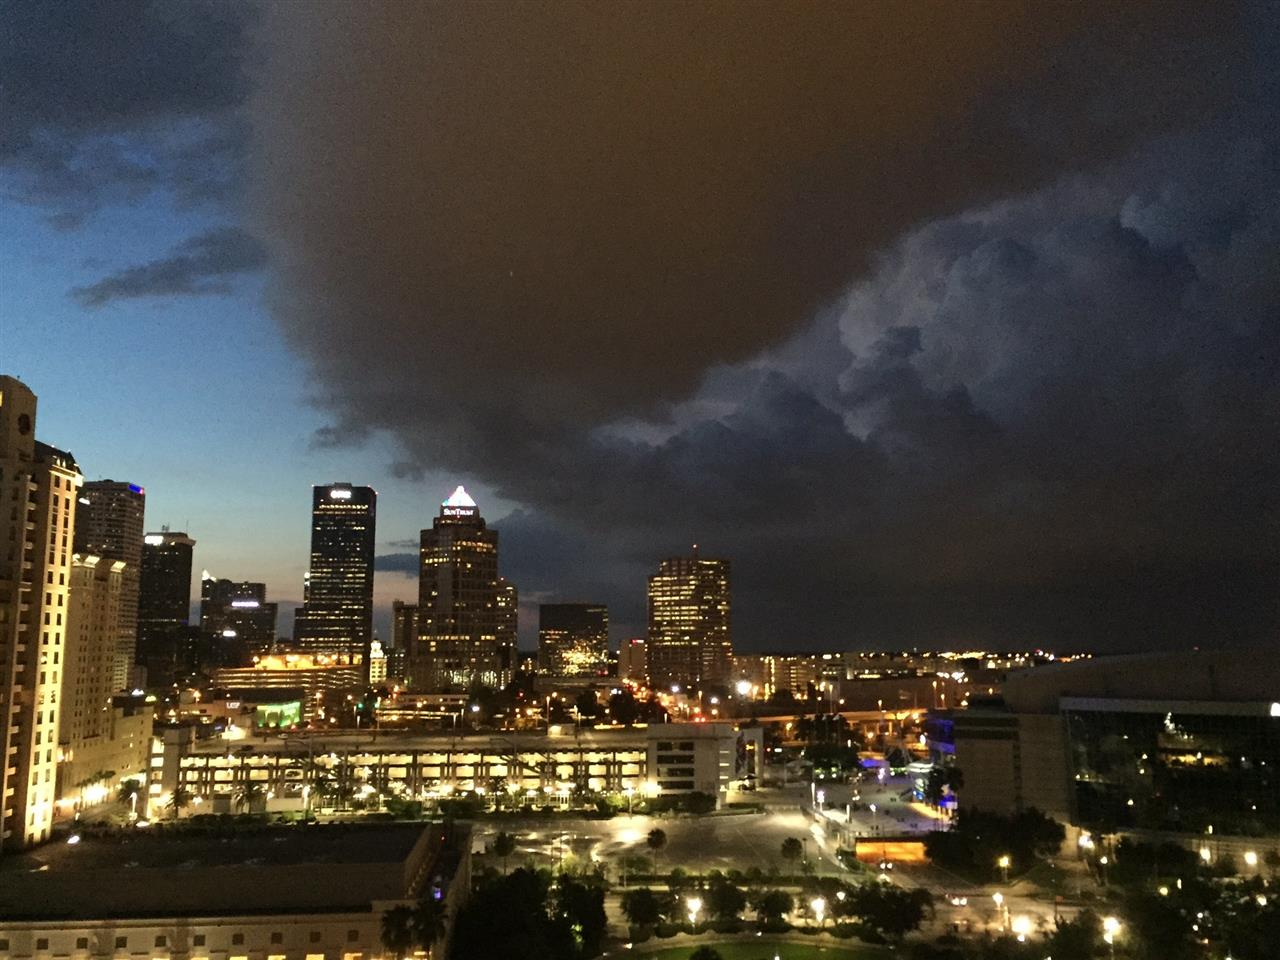 Evening storm moving into downtown Tampa, FL